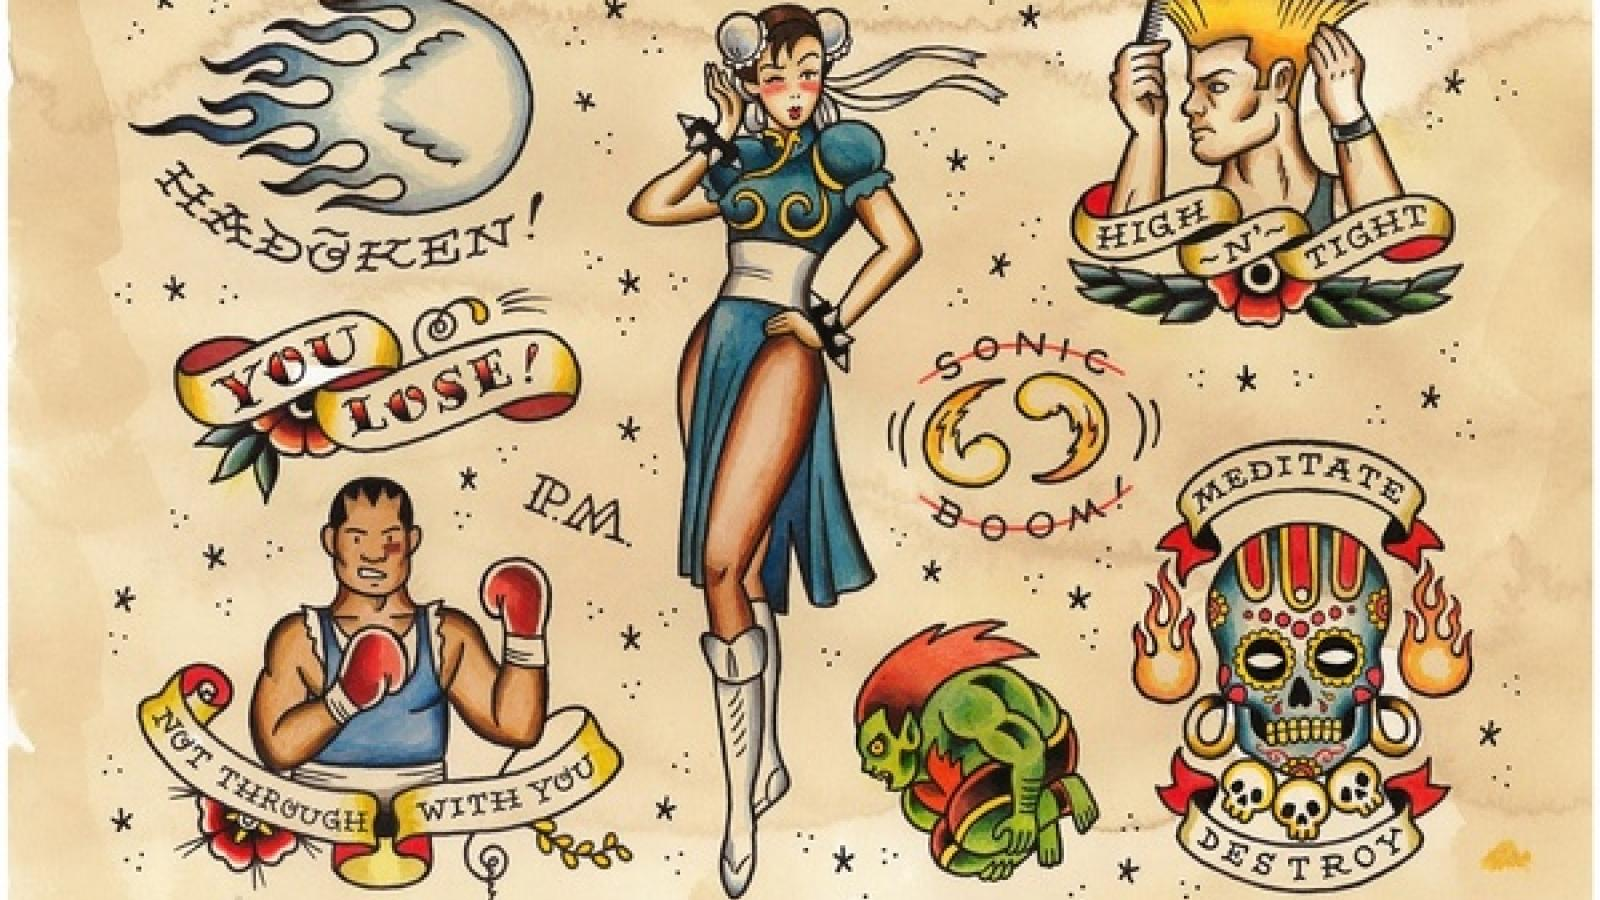 Witty Street Fighter Fanarts